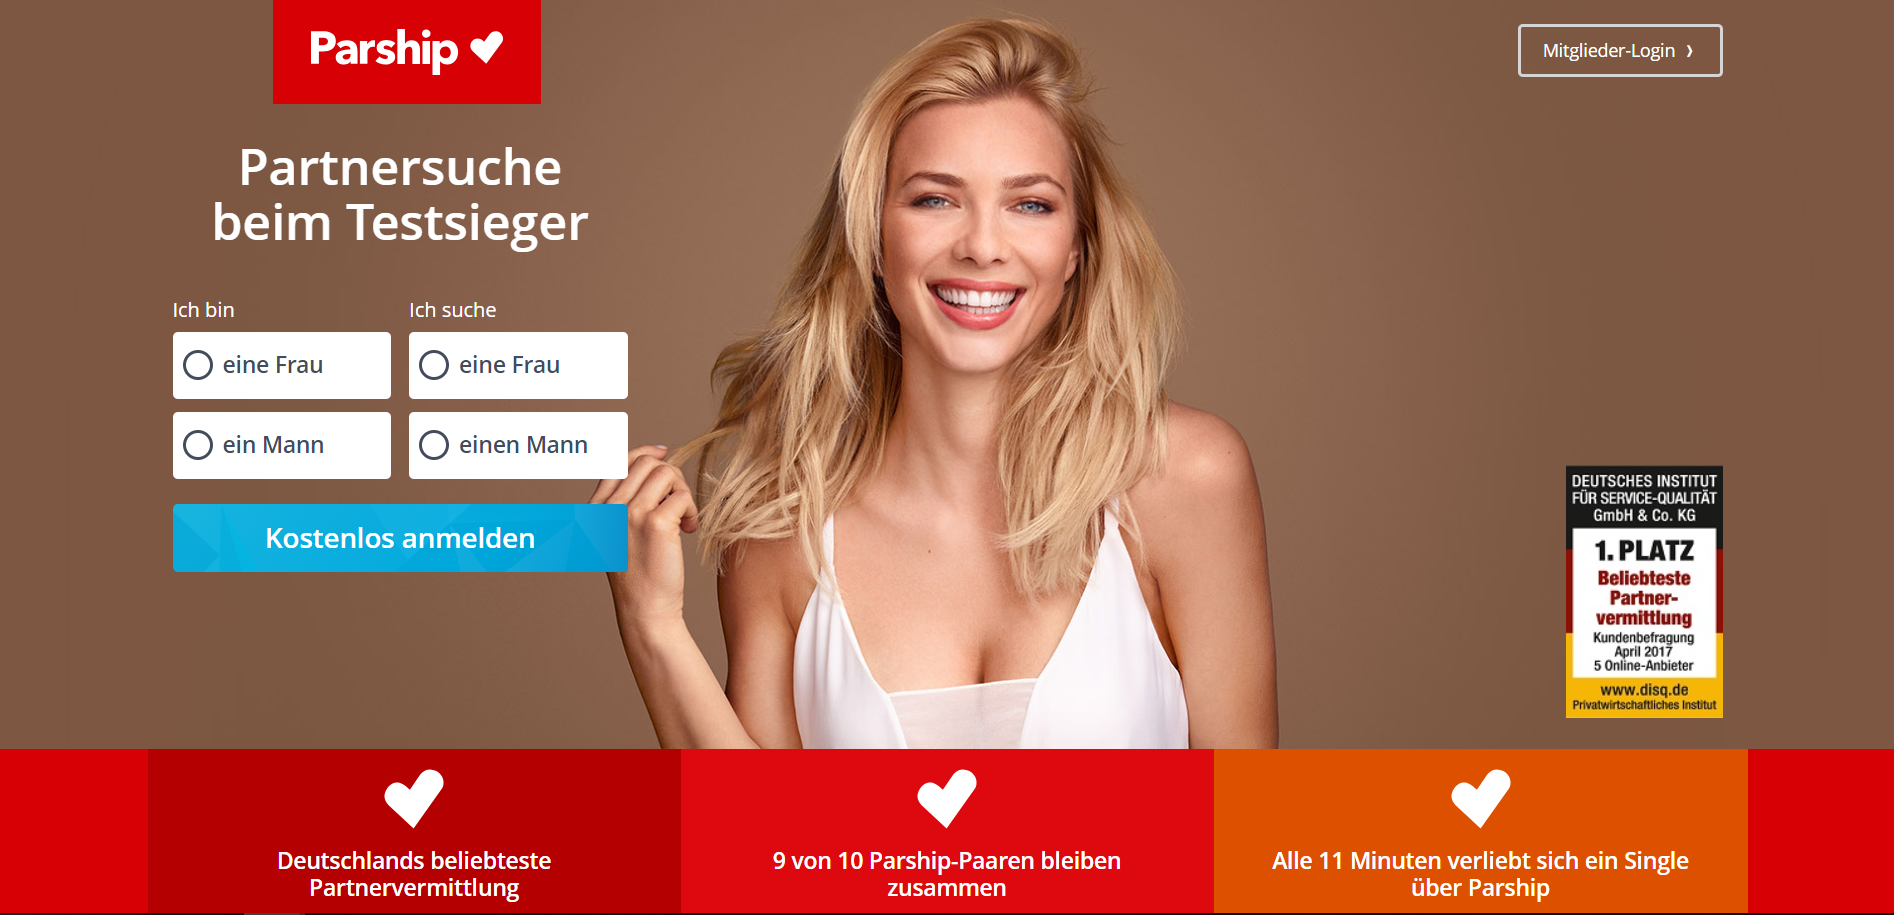 Top 10 dating-sites für senioren über 60